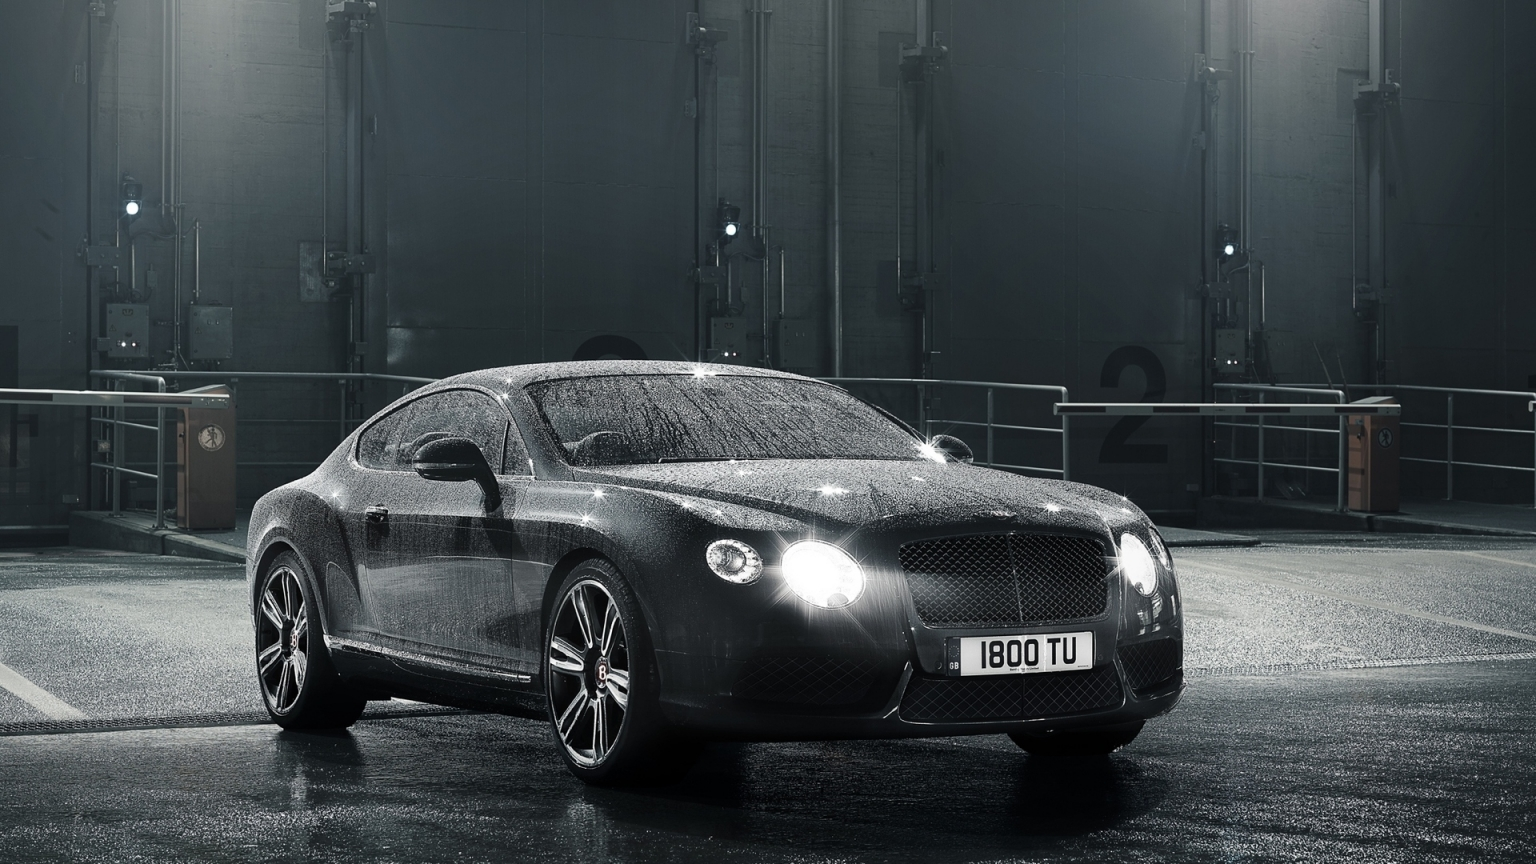 2012 Bentley Continental GT V8 for 1536 x 864 HDTV resolution